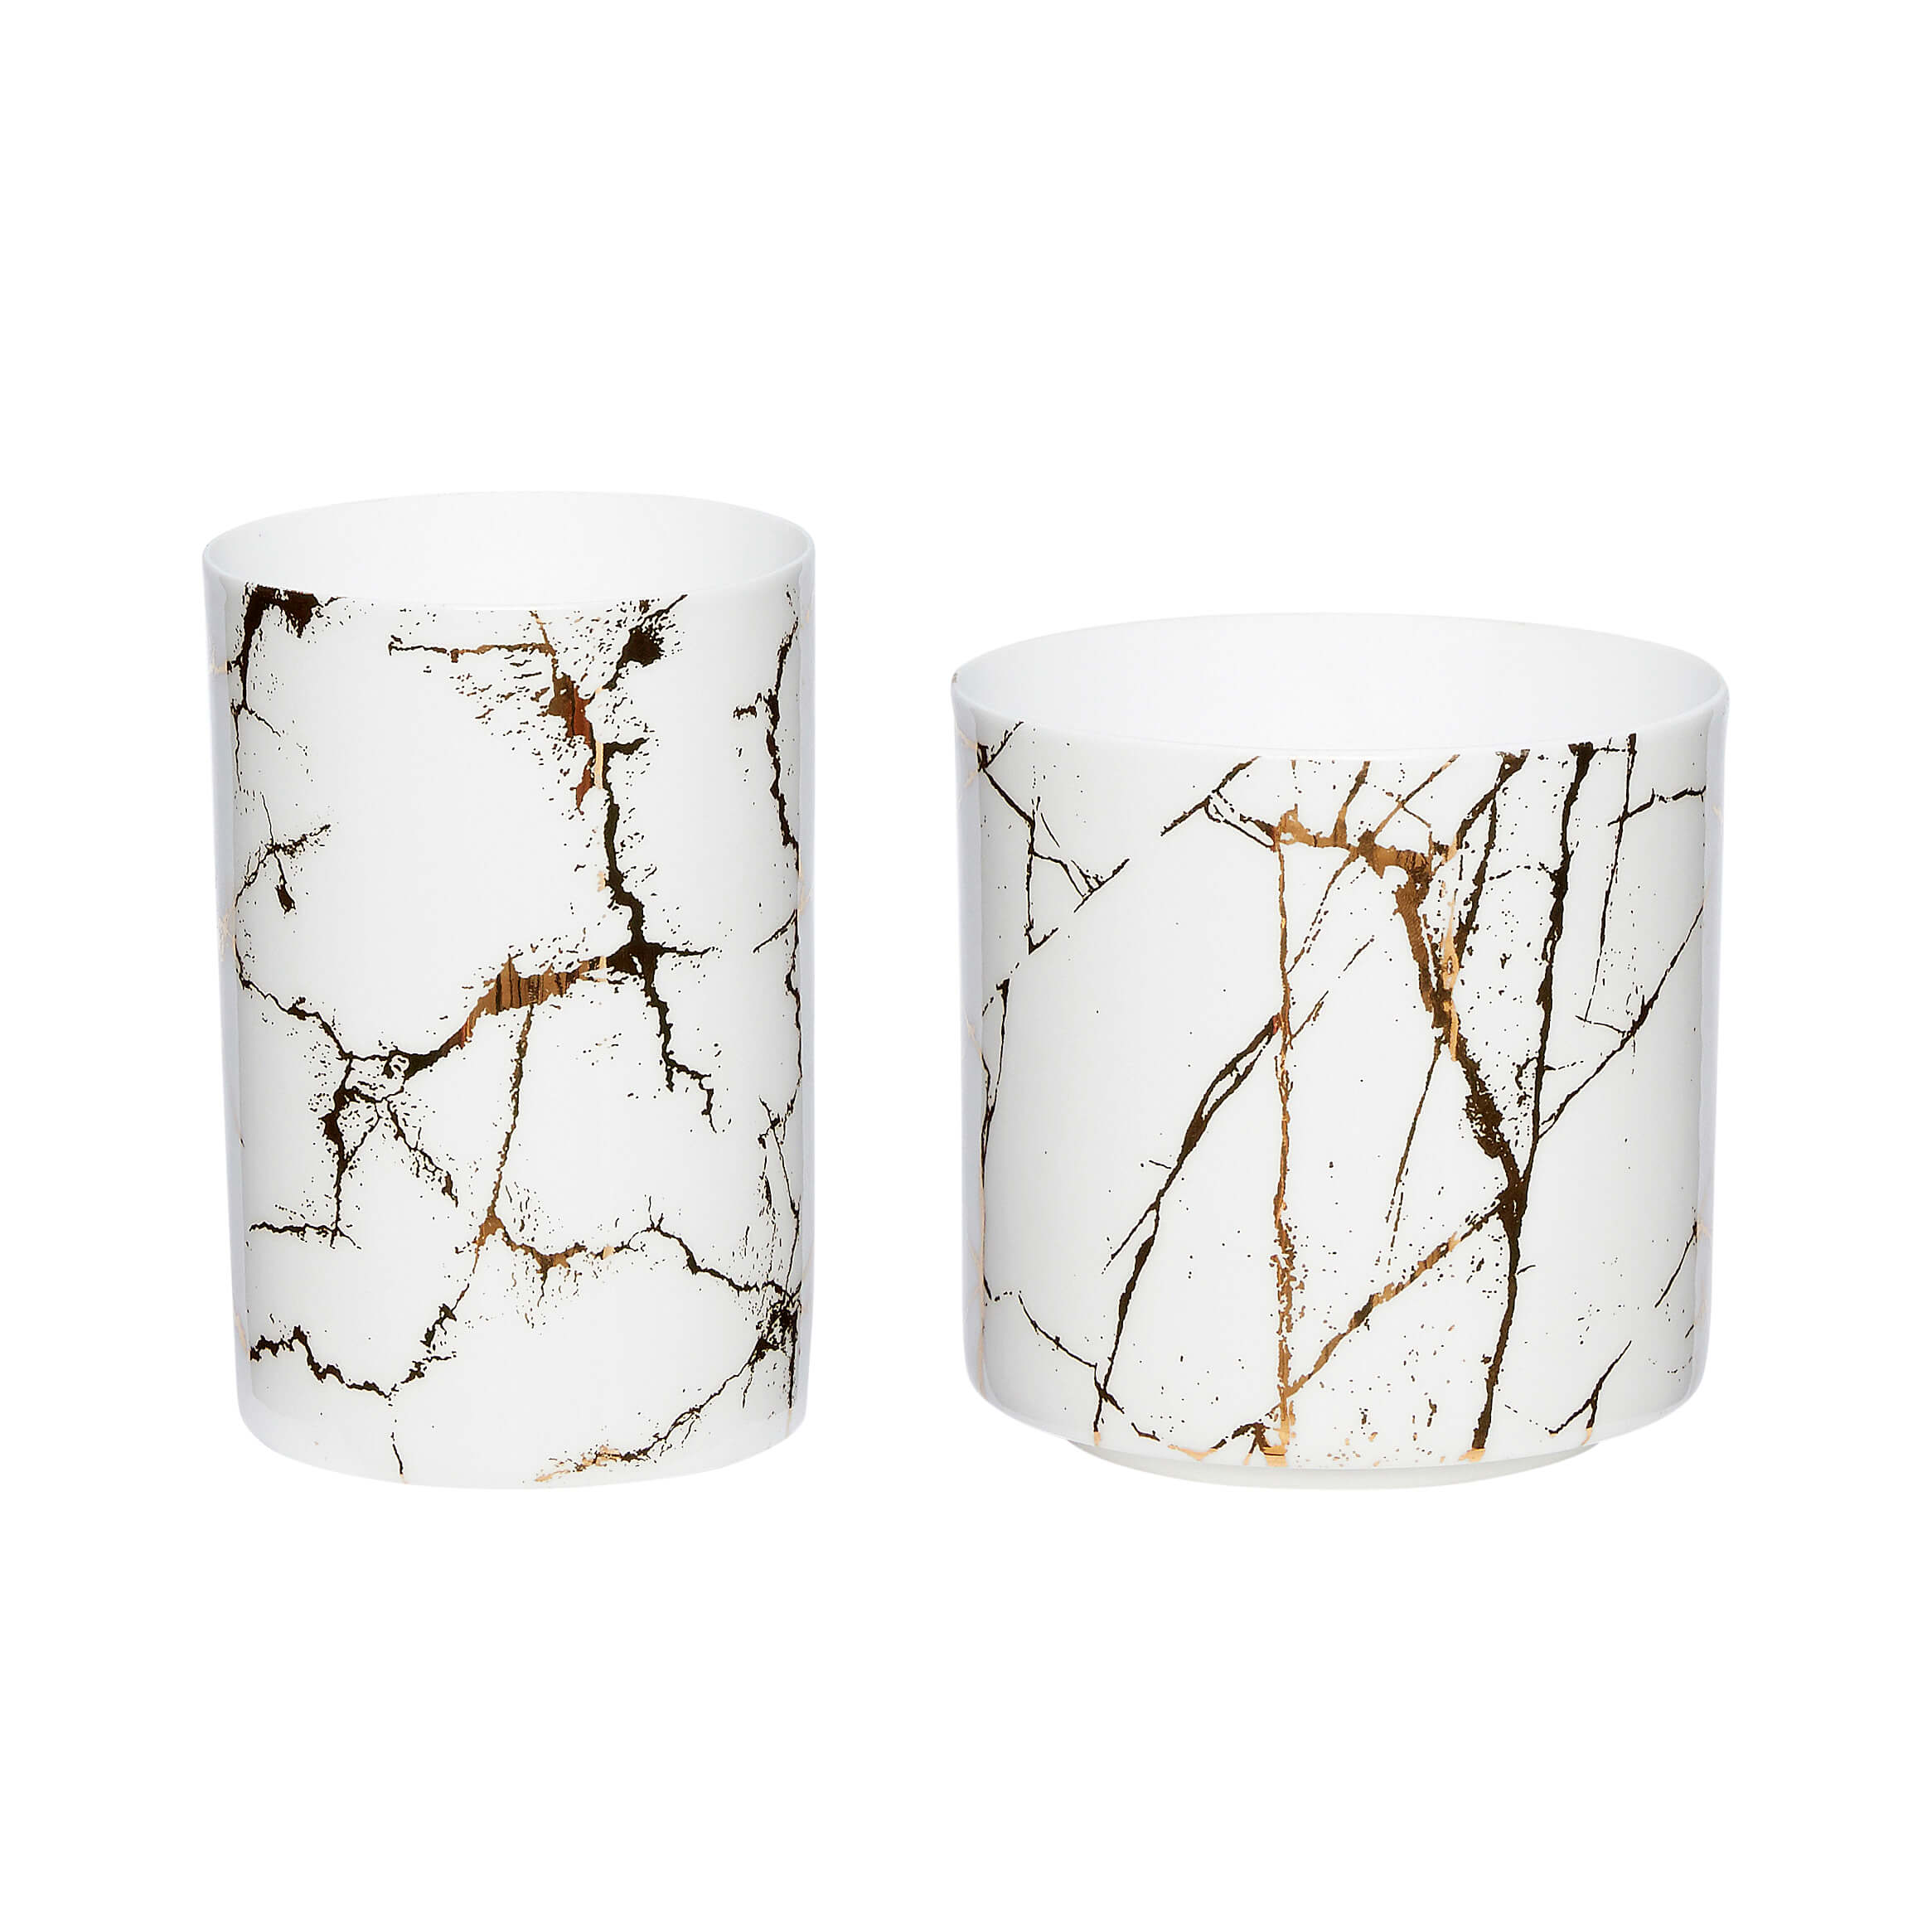 Hubsch Tealight Holder White/Gold Marble - set of 2